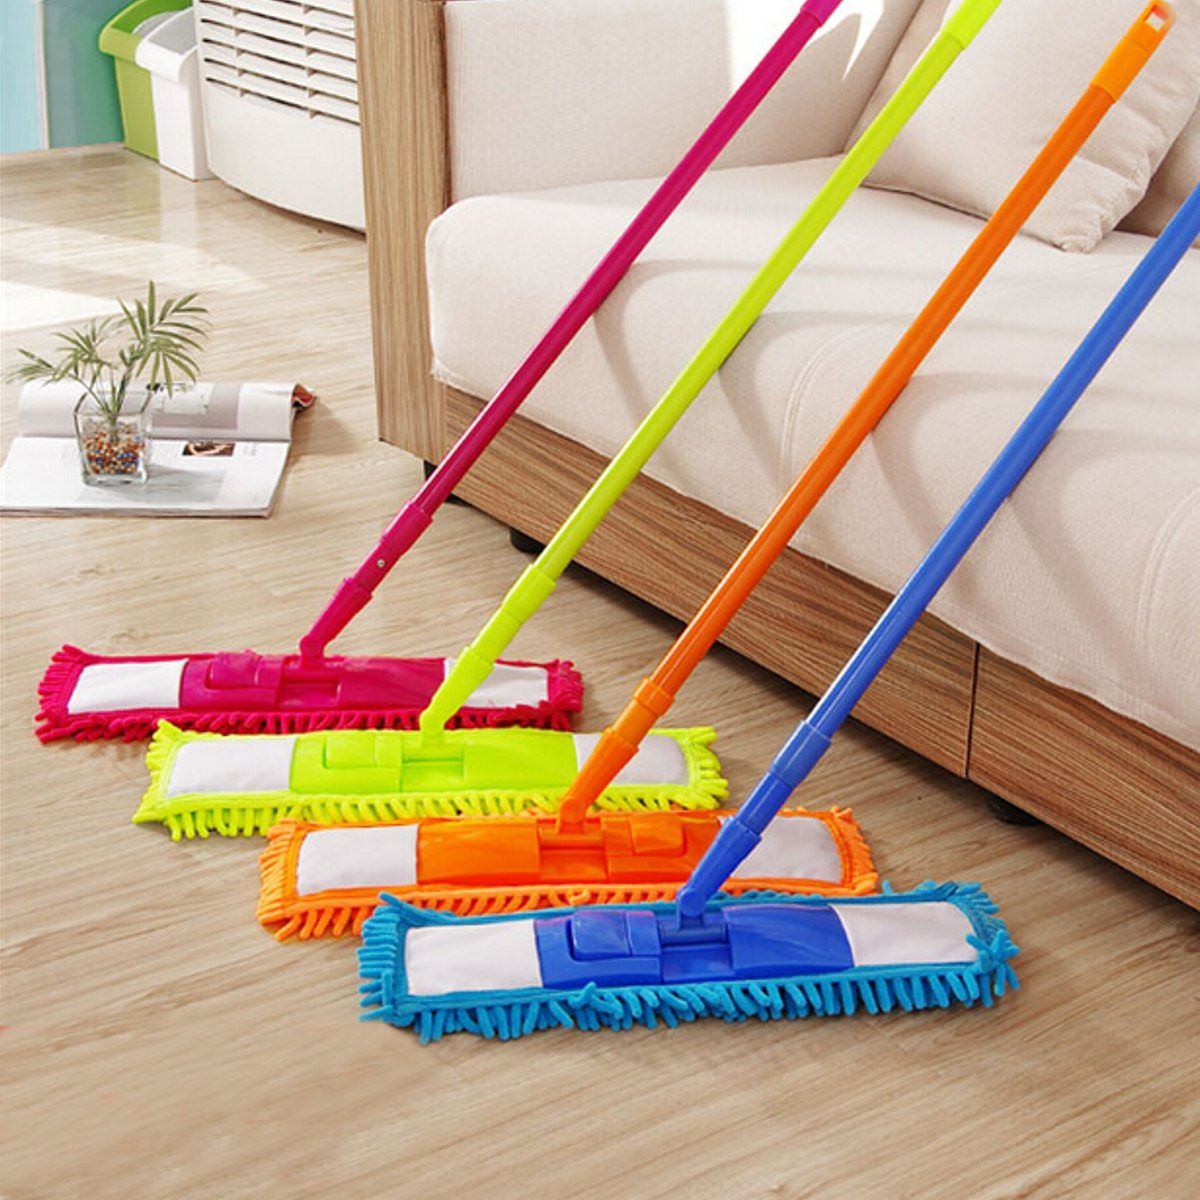 Home Cleaning Tool Handheld Sweeper Broom Floor Mops Colorful 360 Degree Rotatable Cleaner Extendable Microfibre Sweeper Cleaner(China (Mainland))